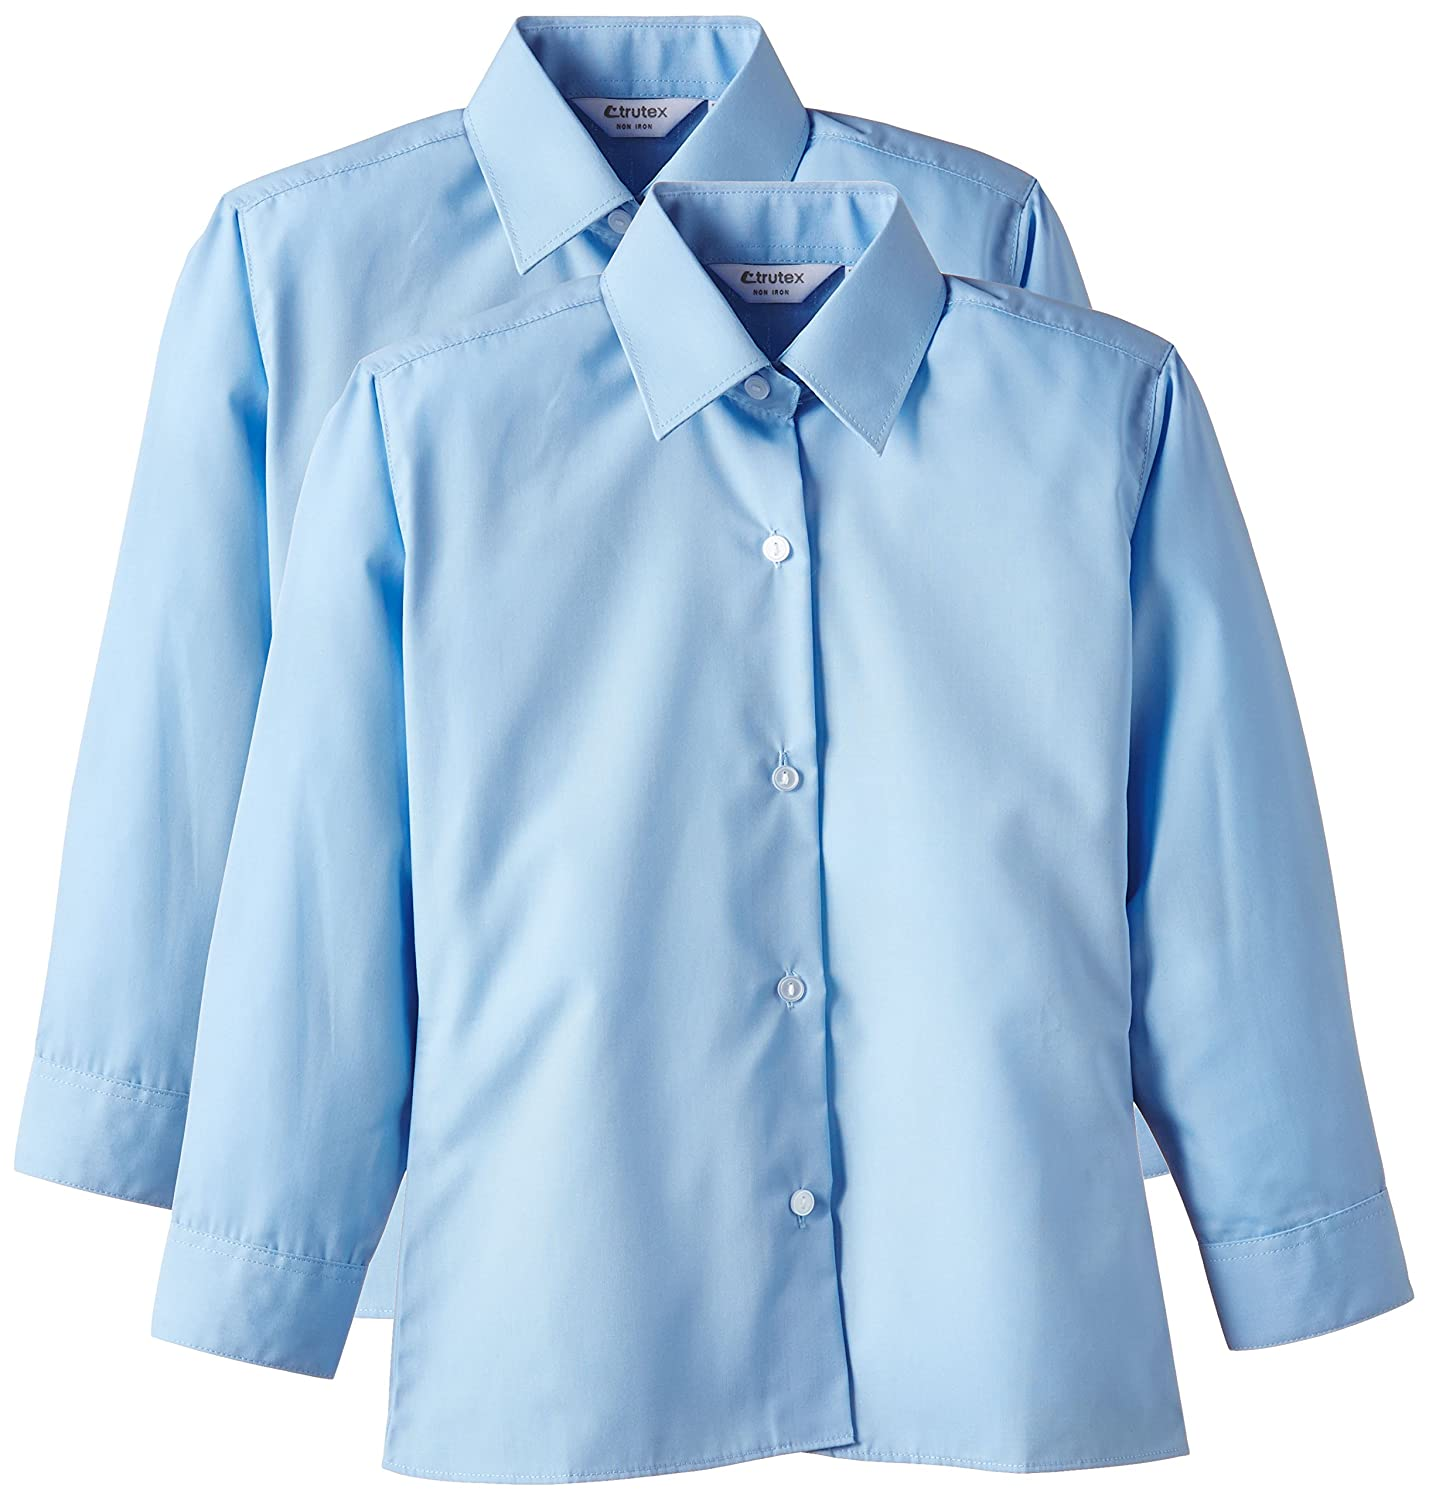 Trutex Limited Boys Non Iron Long Sleeve Shirt Pack Of 2